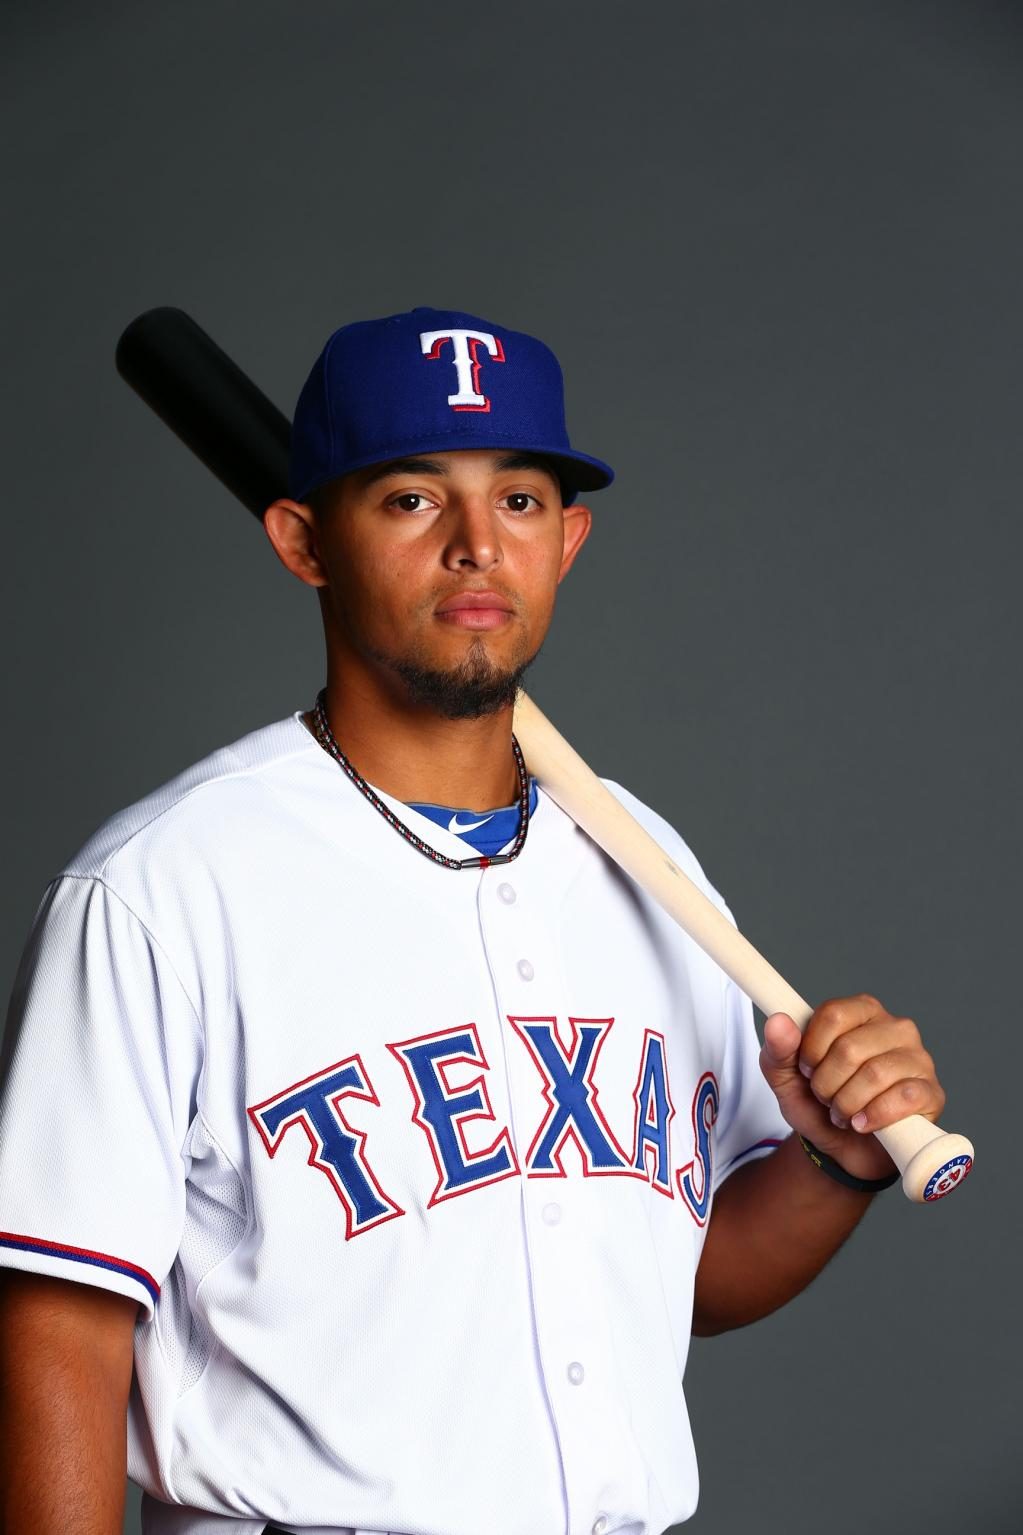 Rookie Review: Did The Rangers' Rougned Odor Show Enough Promise In